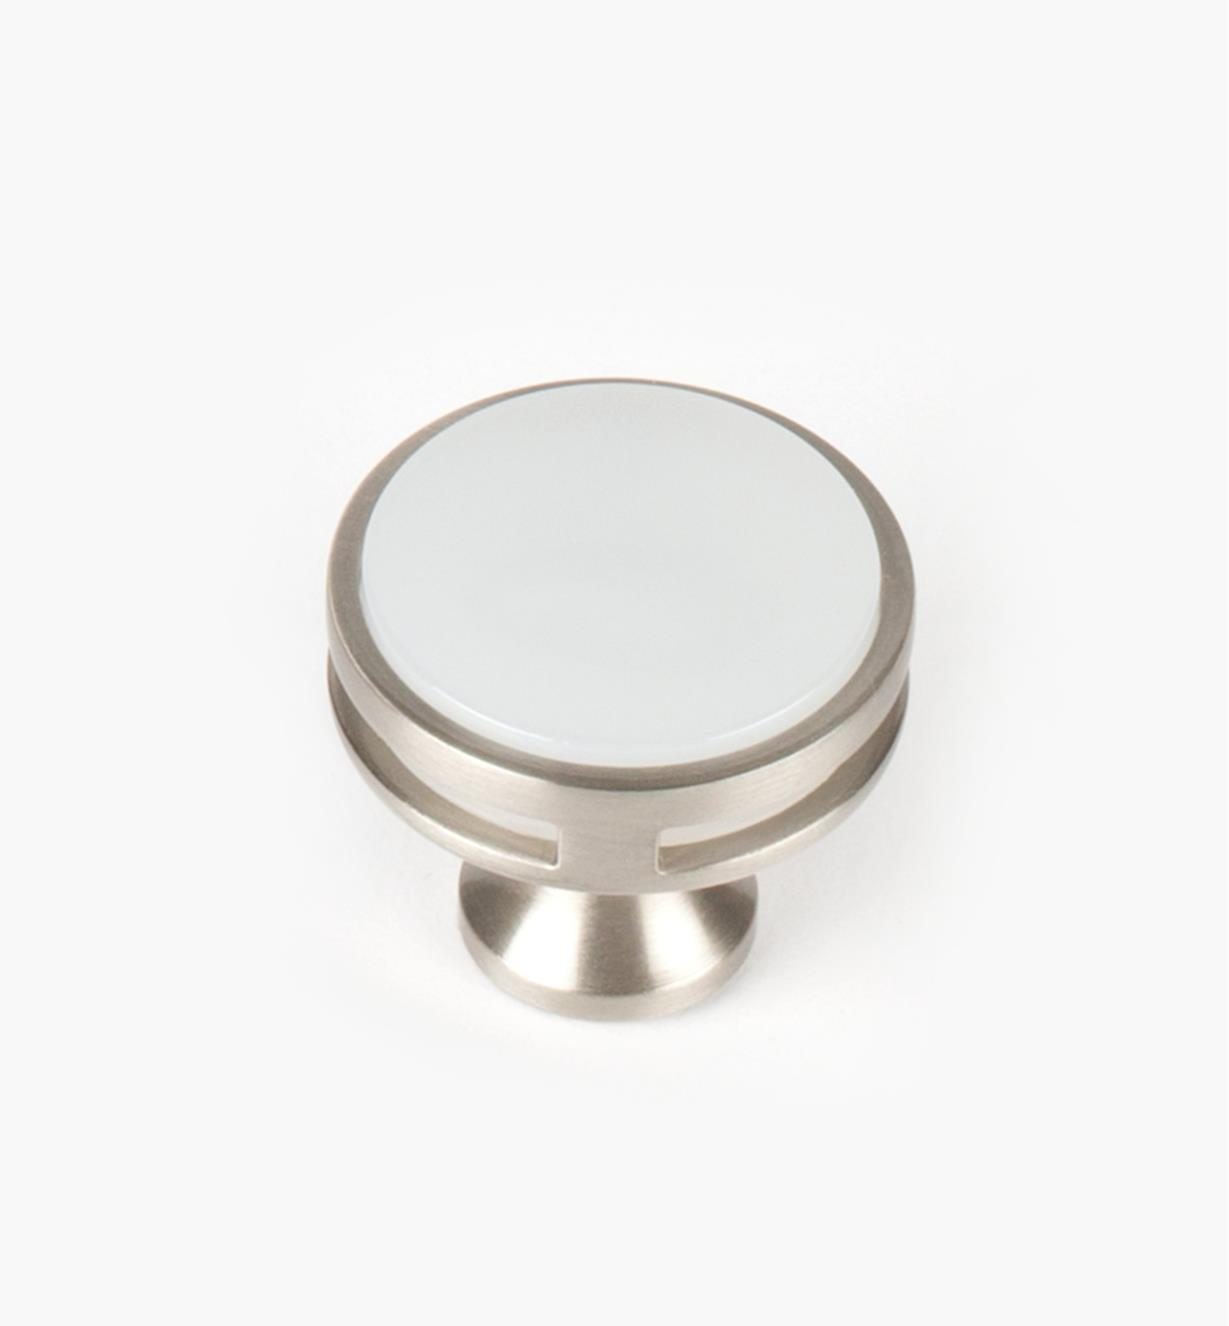 "02A1464 - Oberon Satin Nickel / Acrylic 1 3/8"" Knob, each"